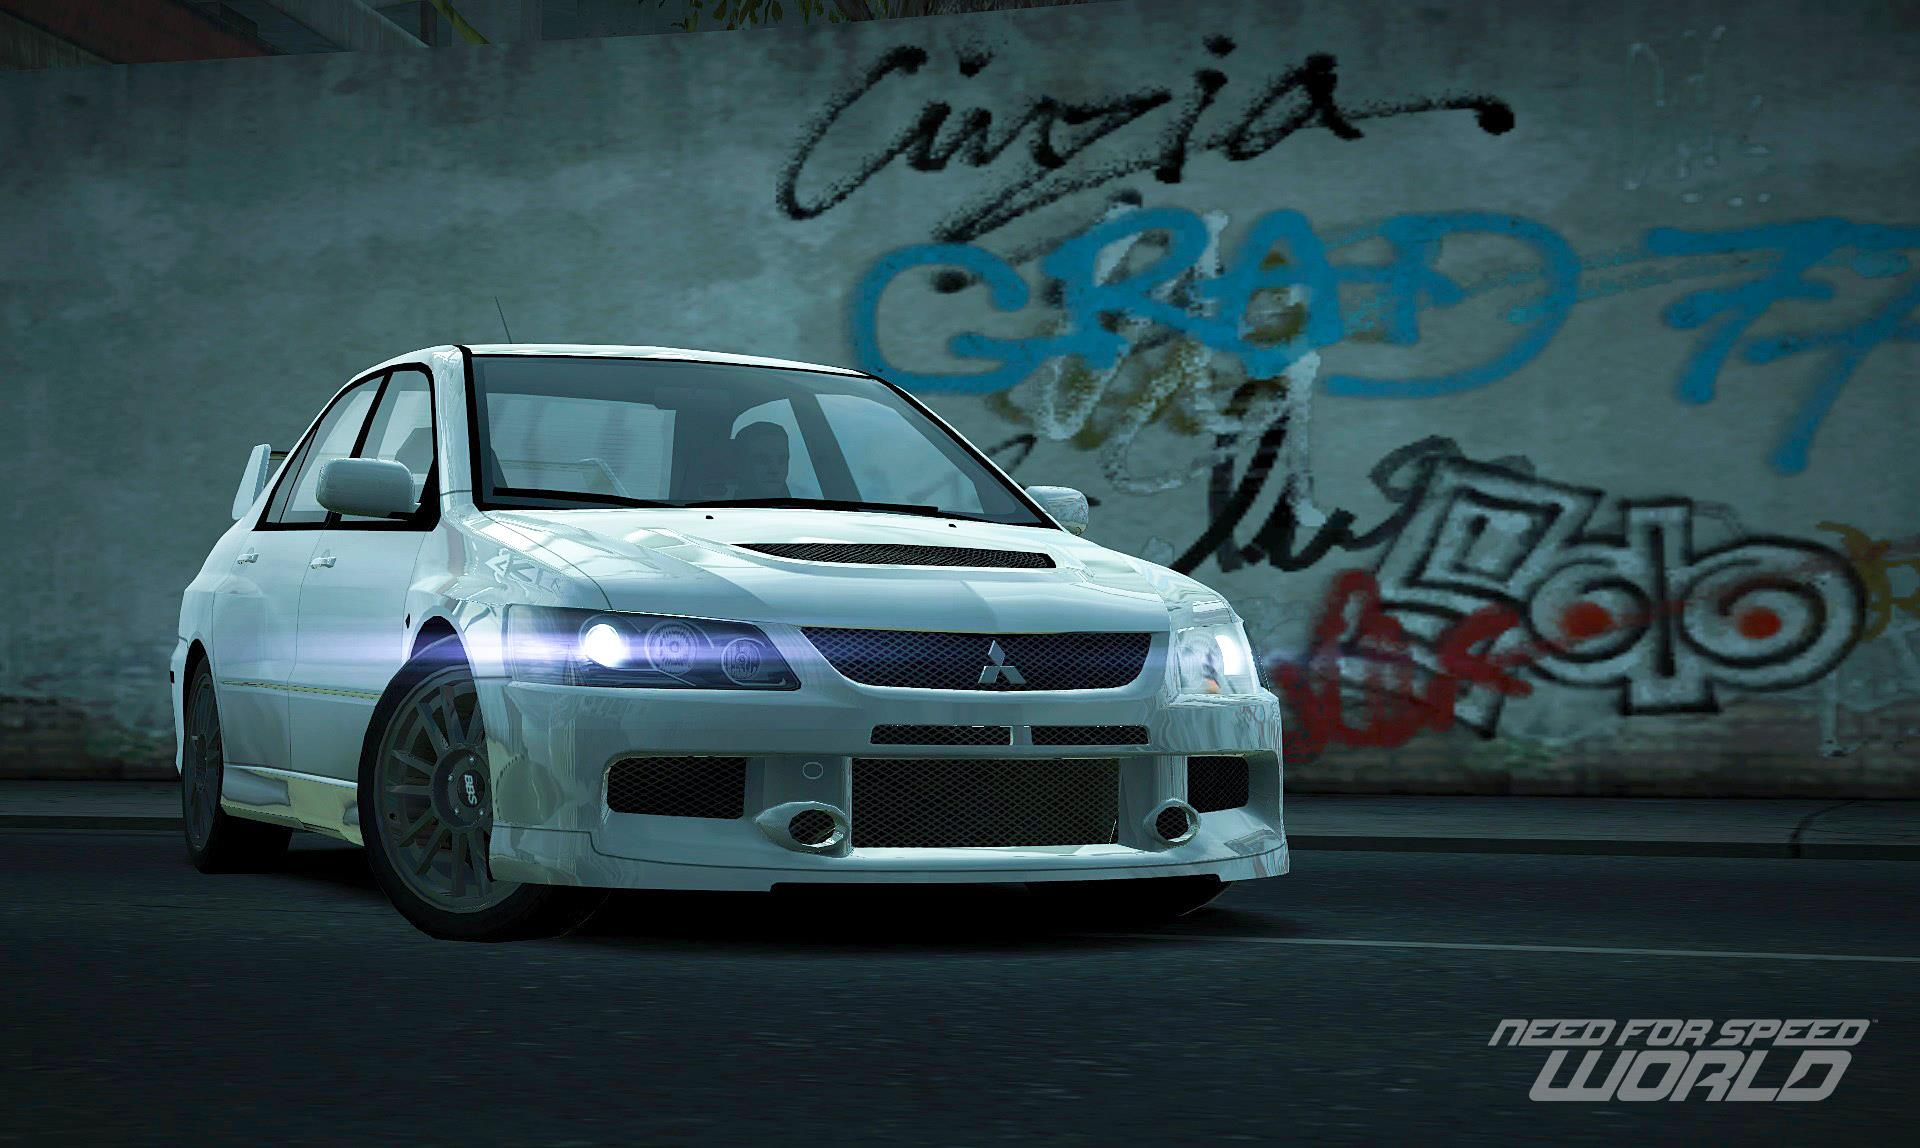 carrelease mitsubishi lancer evolution ix mr edition whitejpg